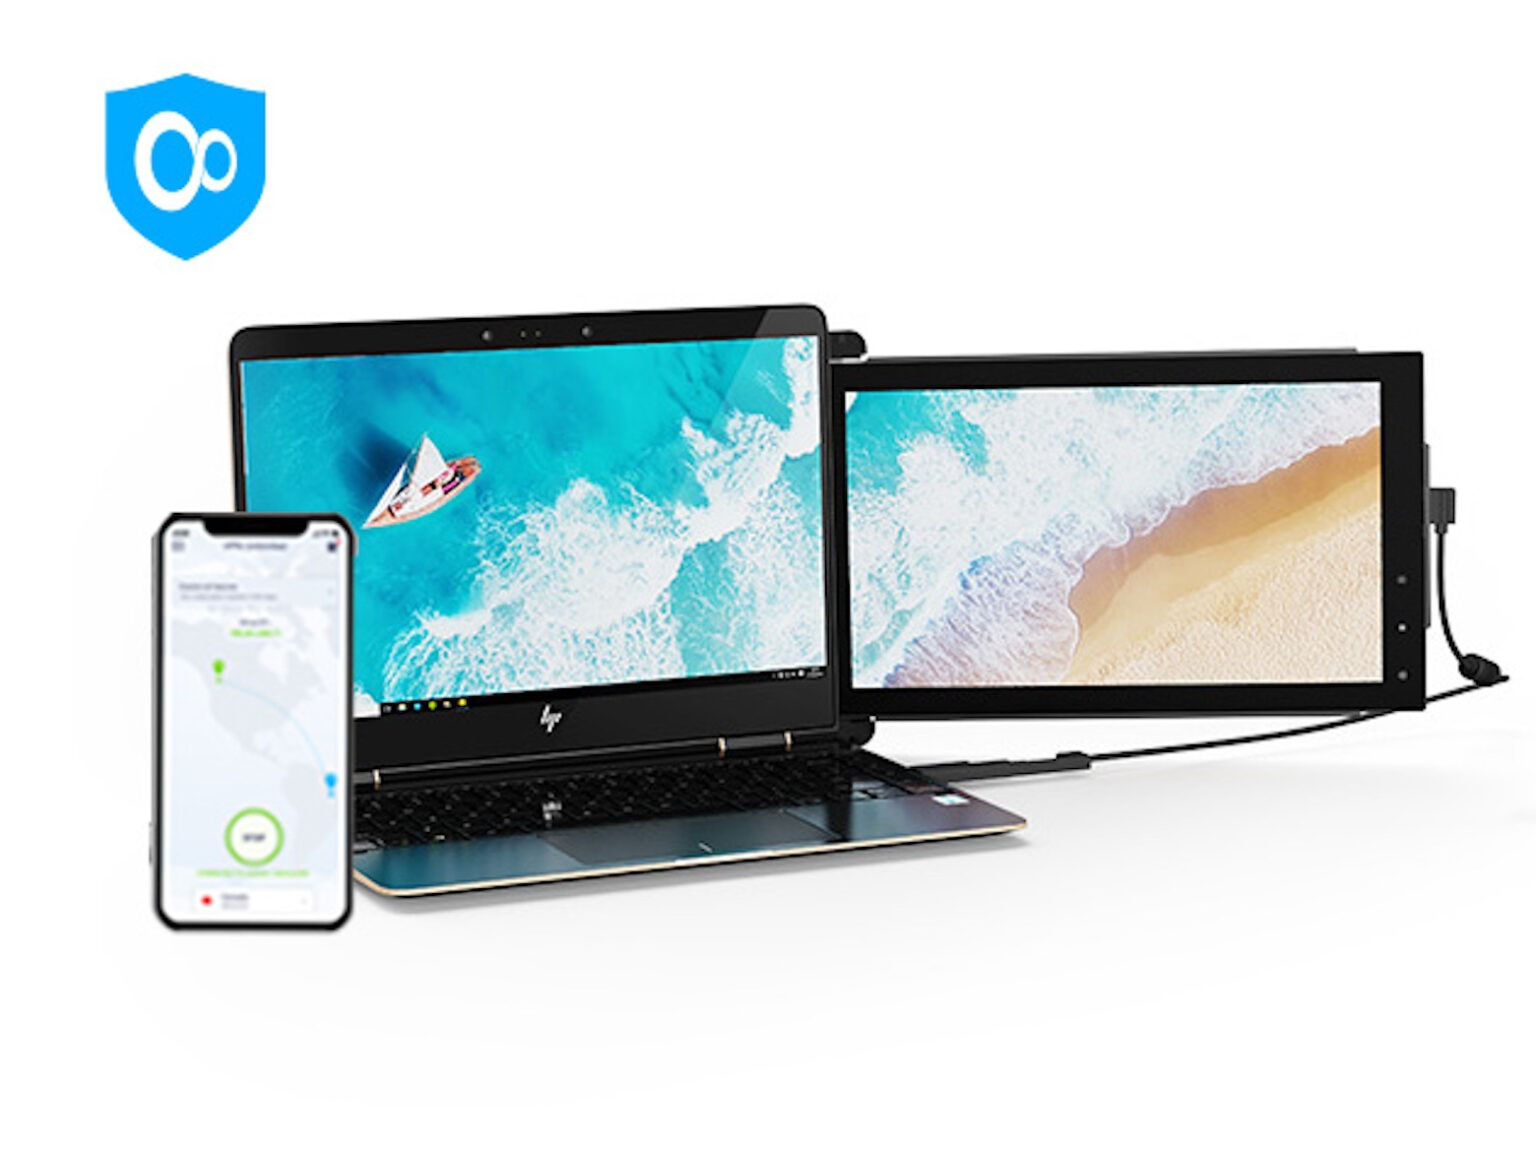 Turn your laptop into a triple screen display from anywhere, and get lifetime access to this award-winning VPN.